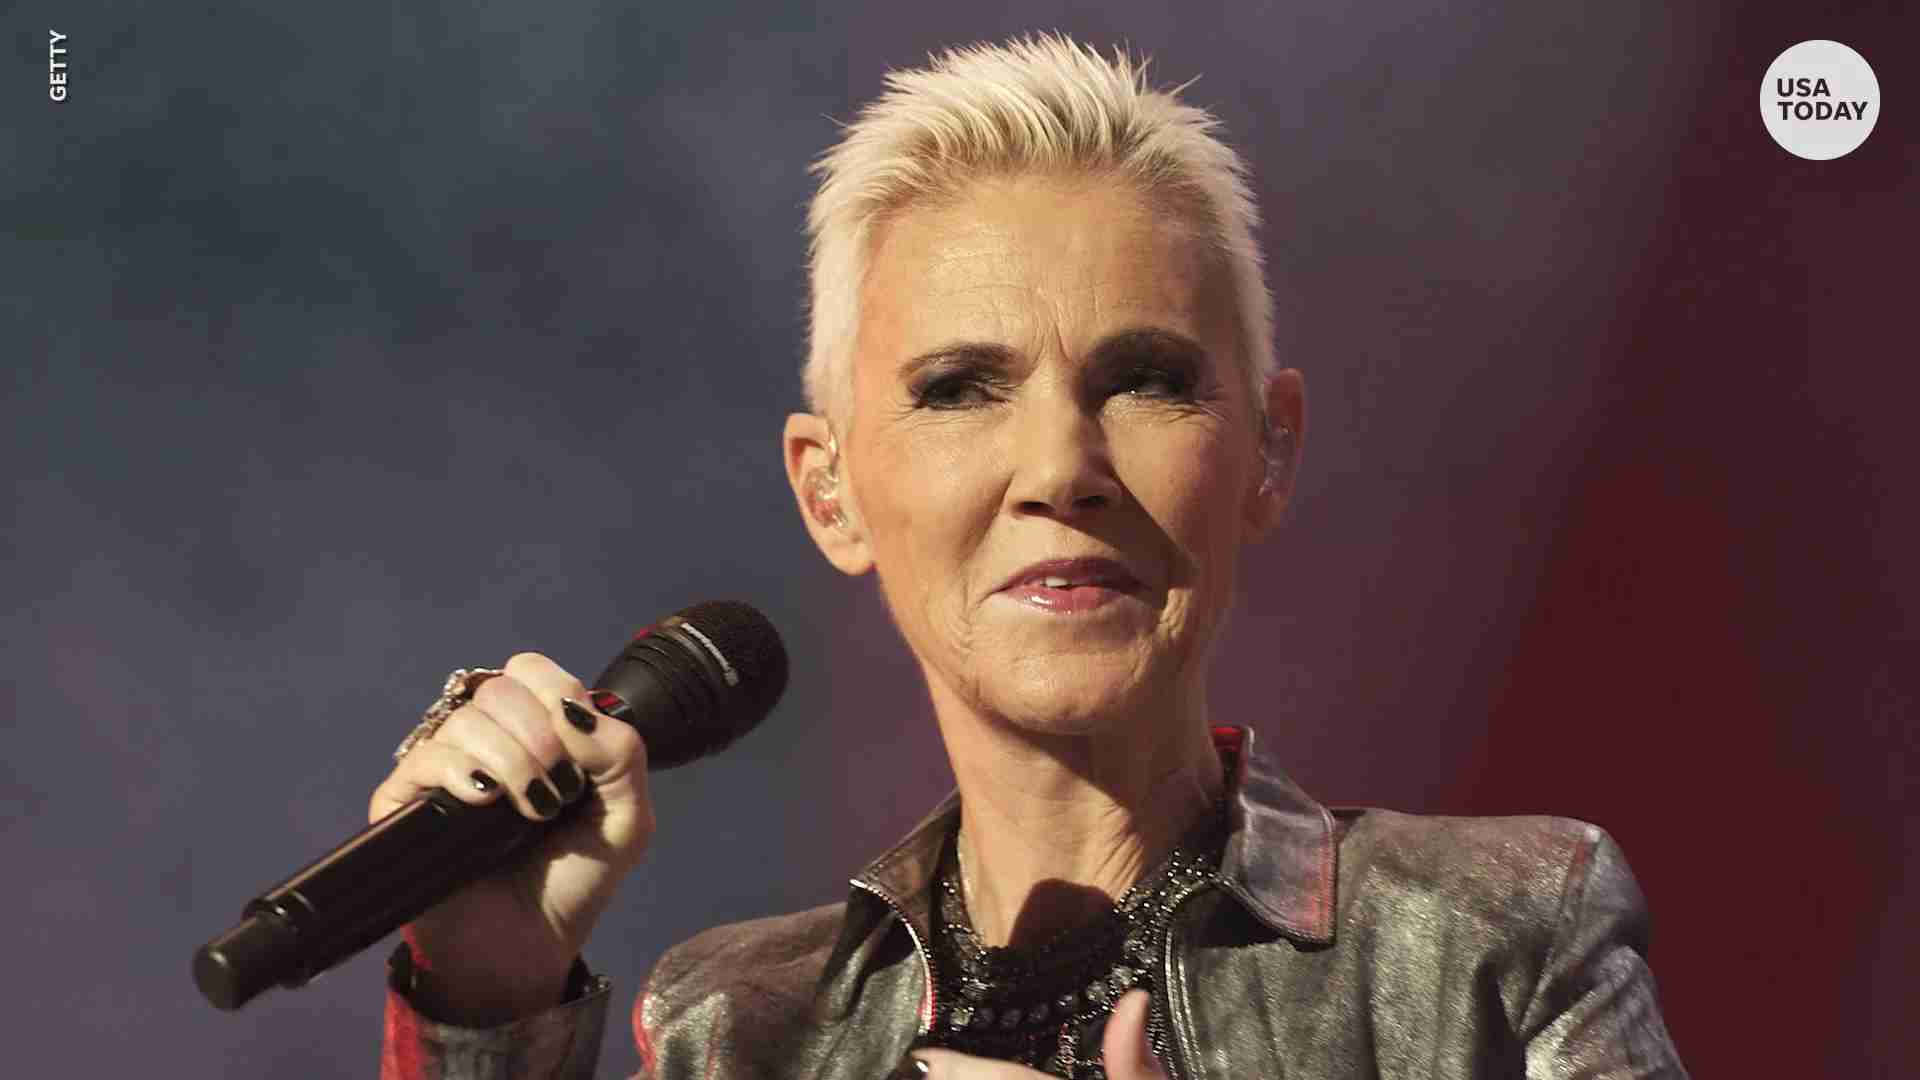 Roxette Singer Marie Fredriksson Dies After 17 Year Cancer